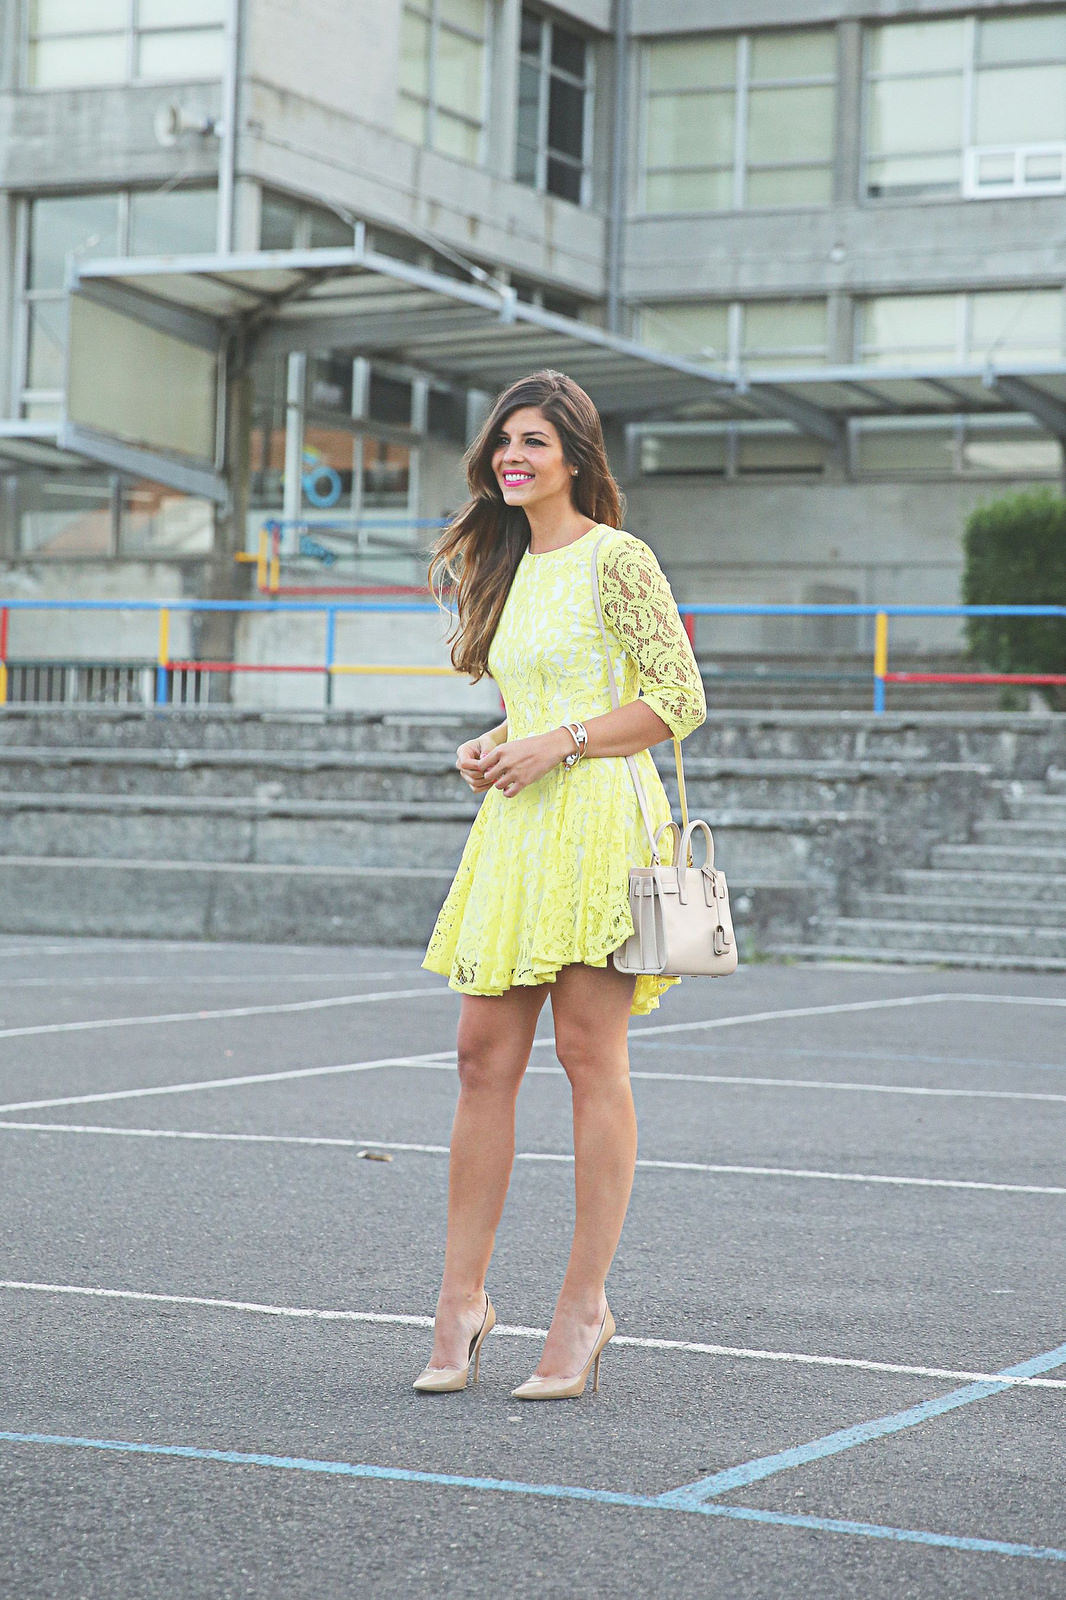 Natalia Cabezas shows how you can wear a yellow lace dress with beige shoes and bag